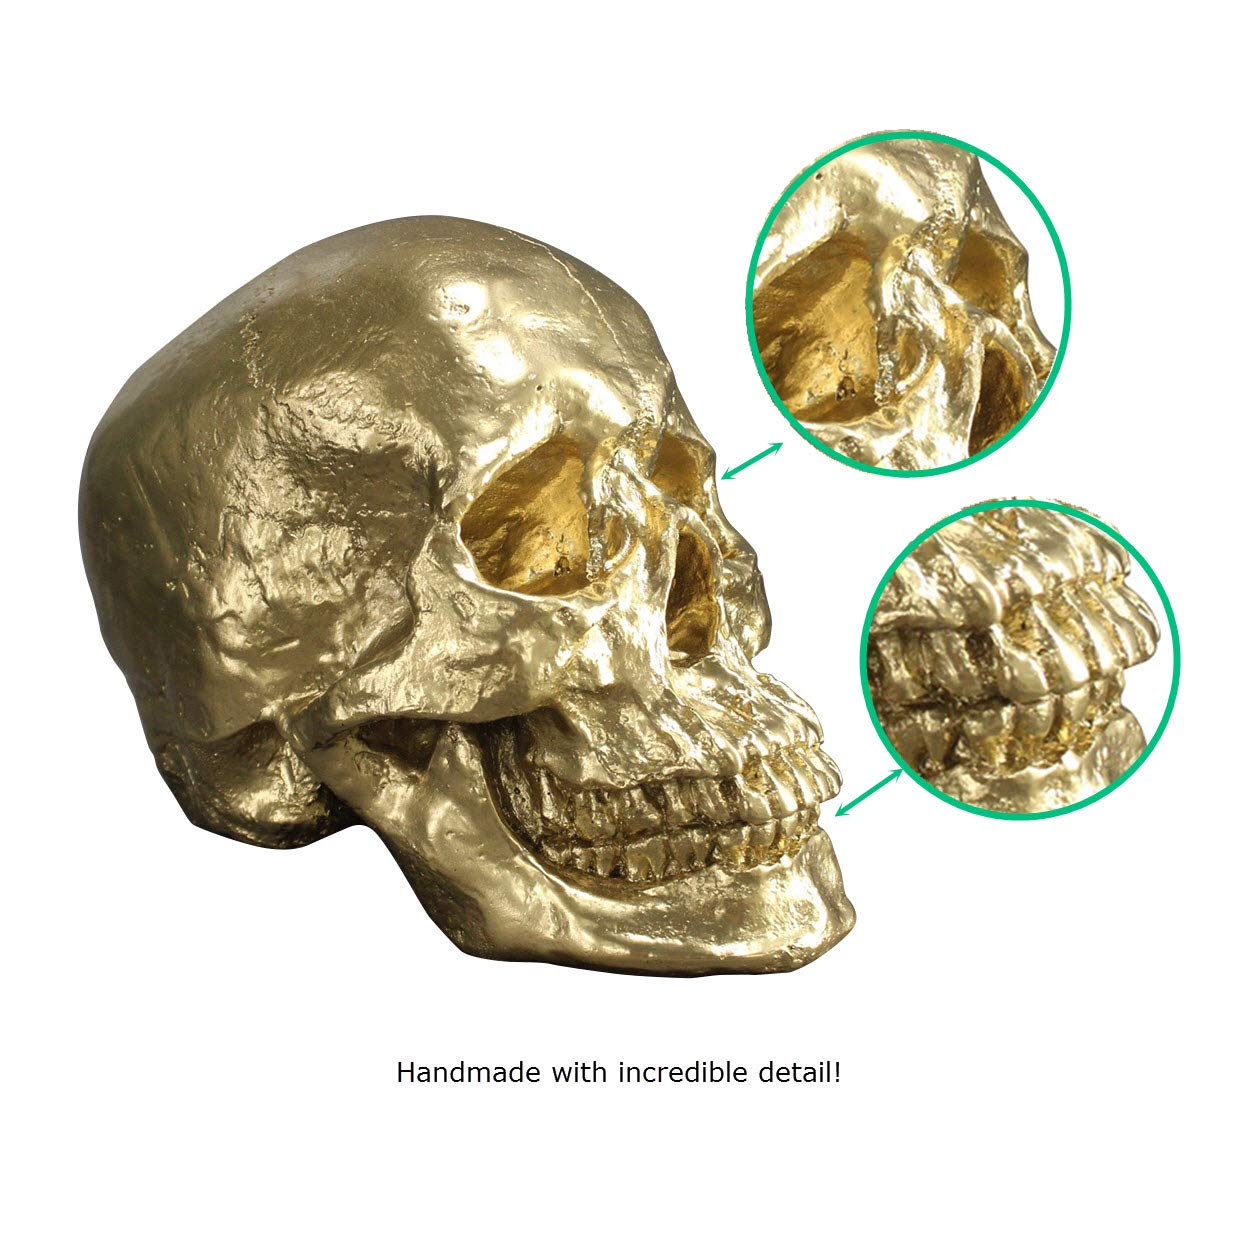 Wall Charmers Life Size Human Skull - 8.5'' Gold Faux Human Anatomy - Table Top Skeleton Head Home Decor by Wall Charmers (Image #3)